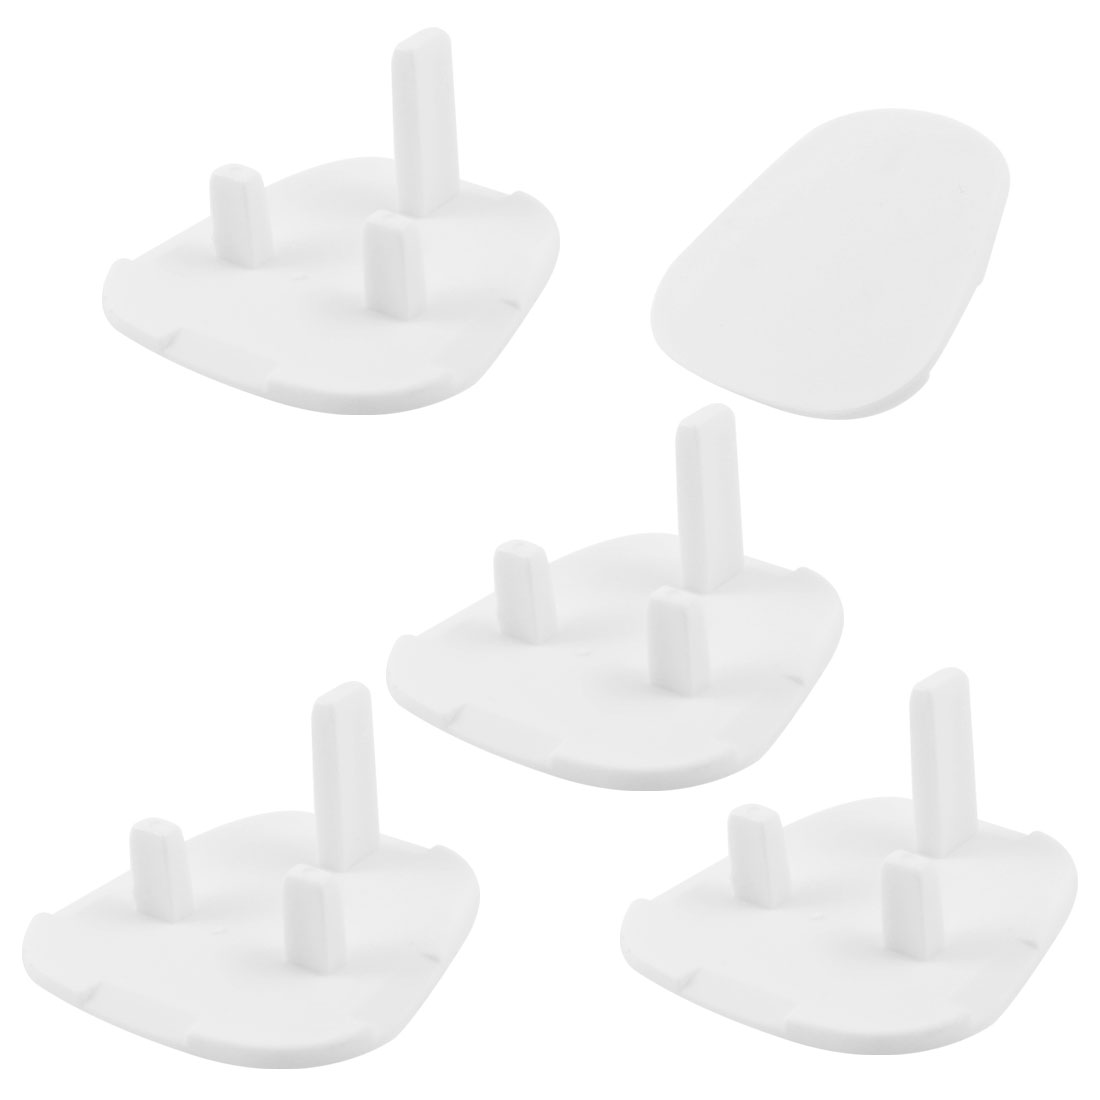 Home White Plastic 3 Flat Pin Safety Socket Covers Cap 5 Pcs